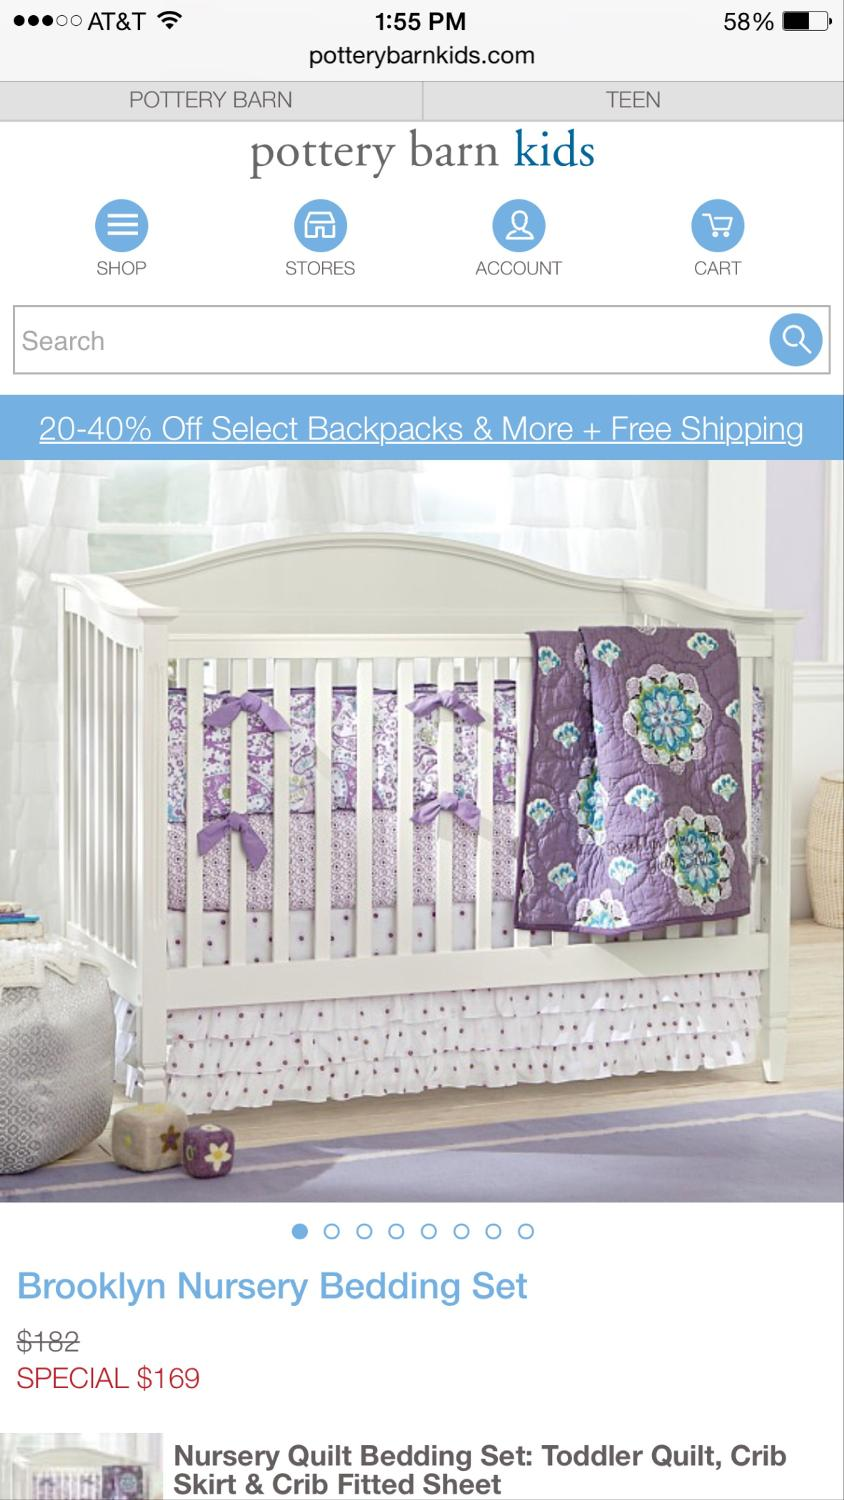 find more pottery barn brooklyn nursery bedding set for sale at up